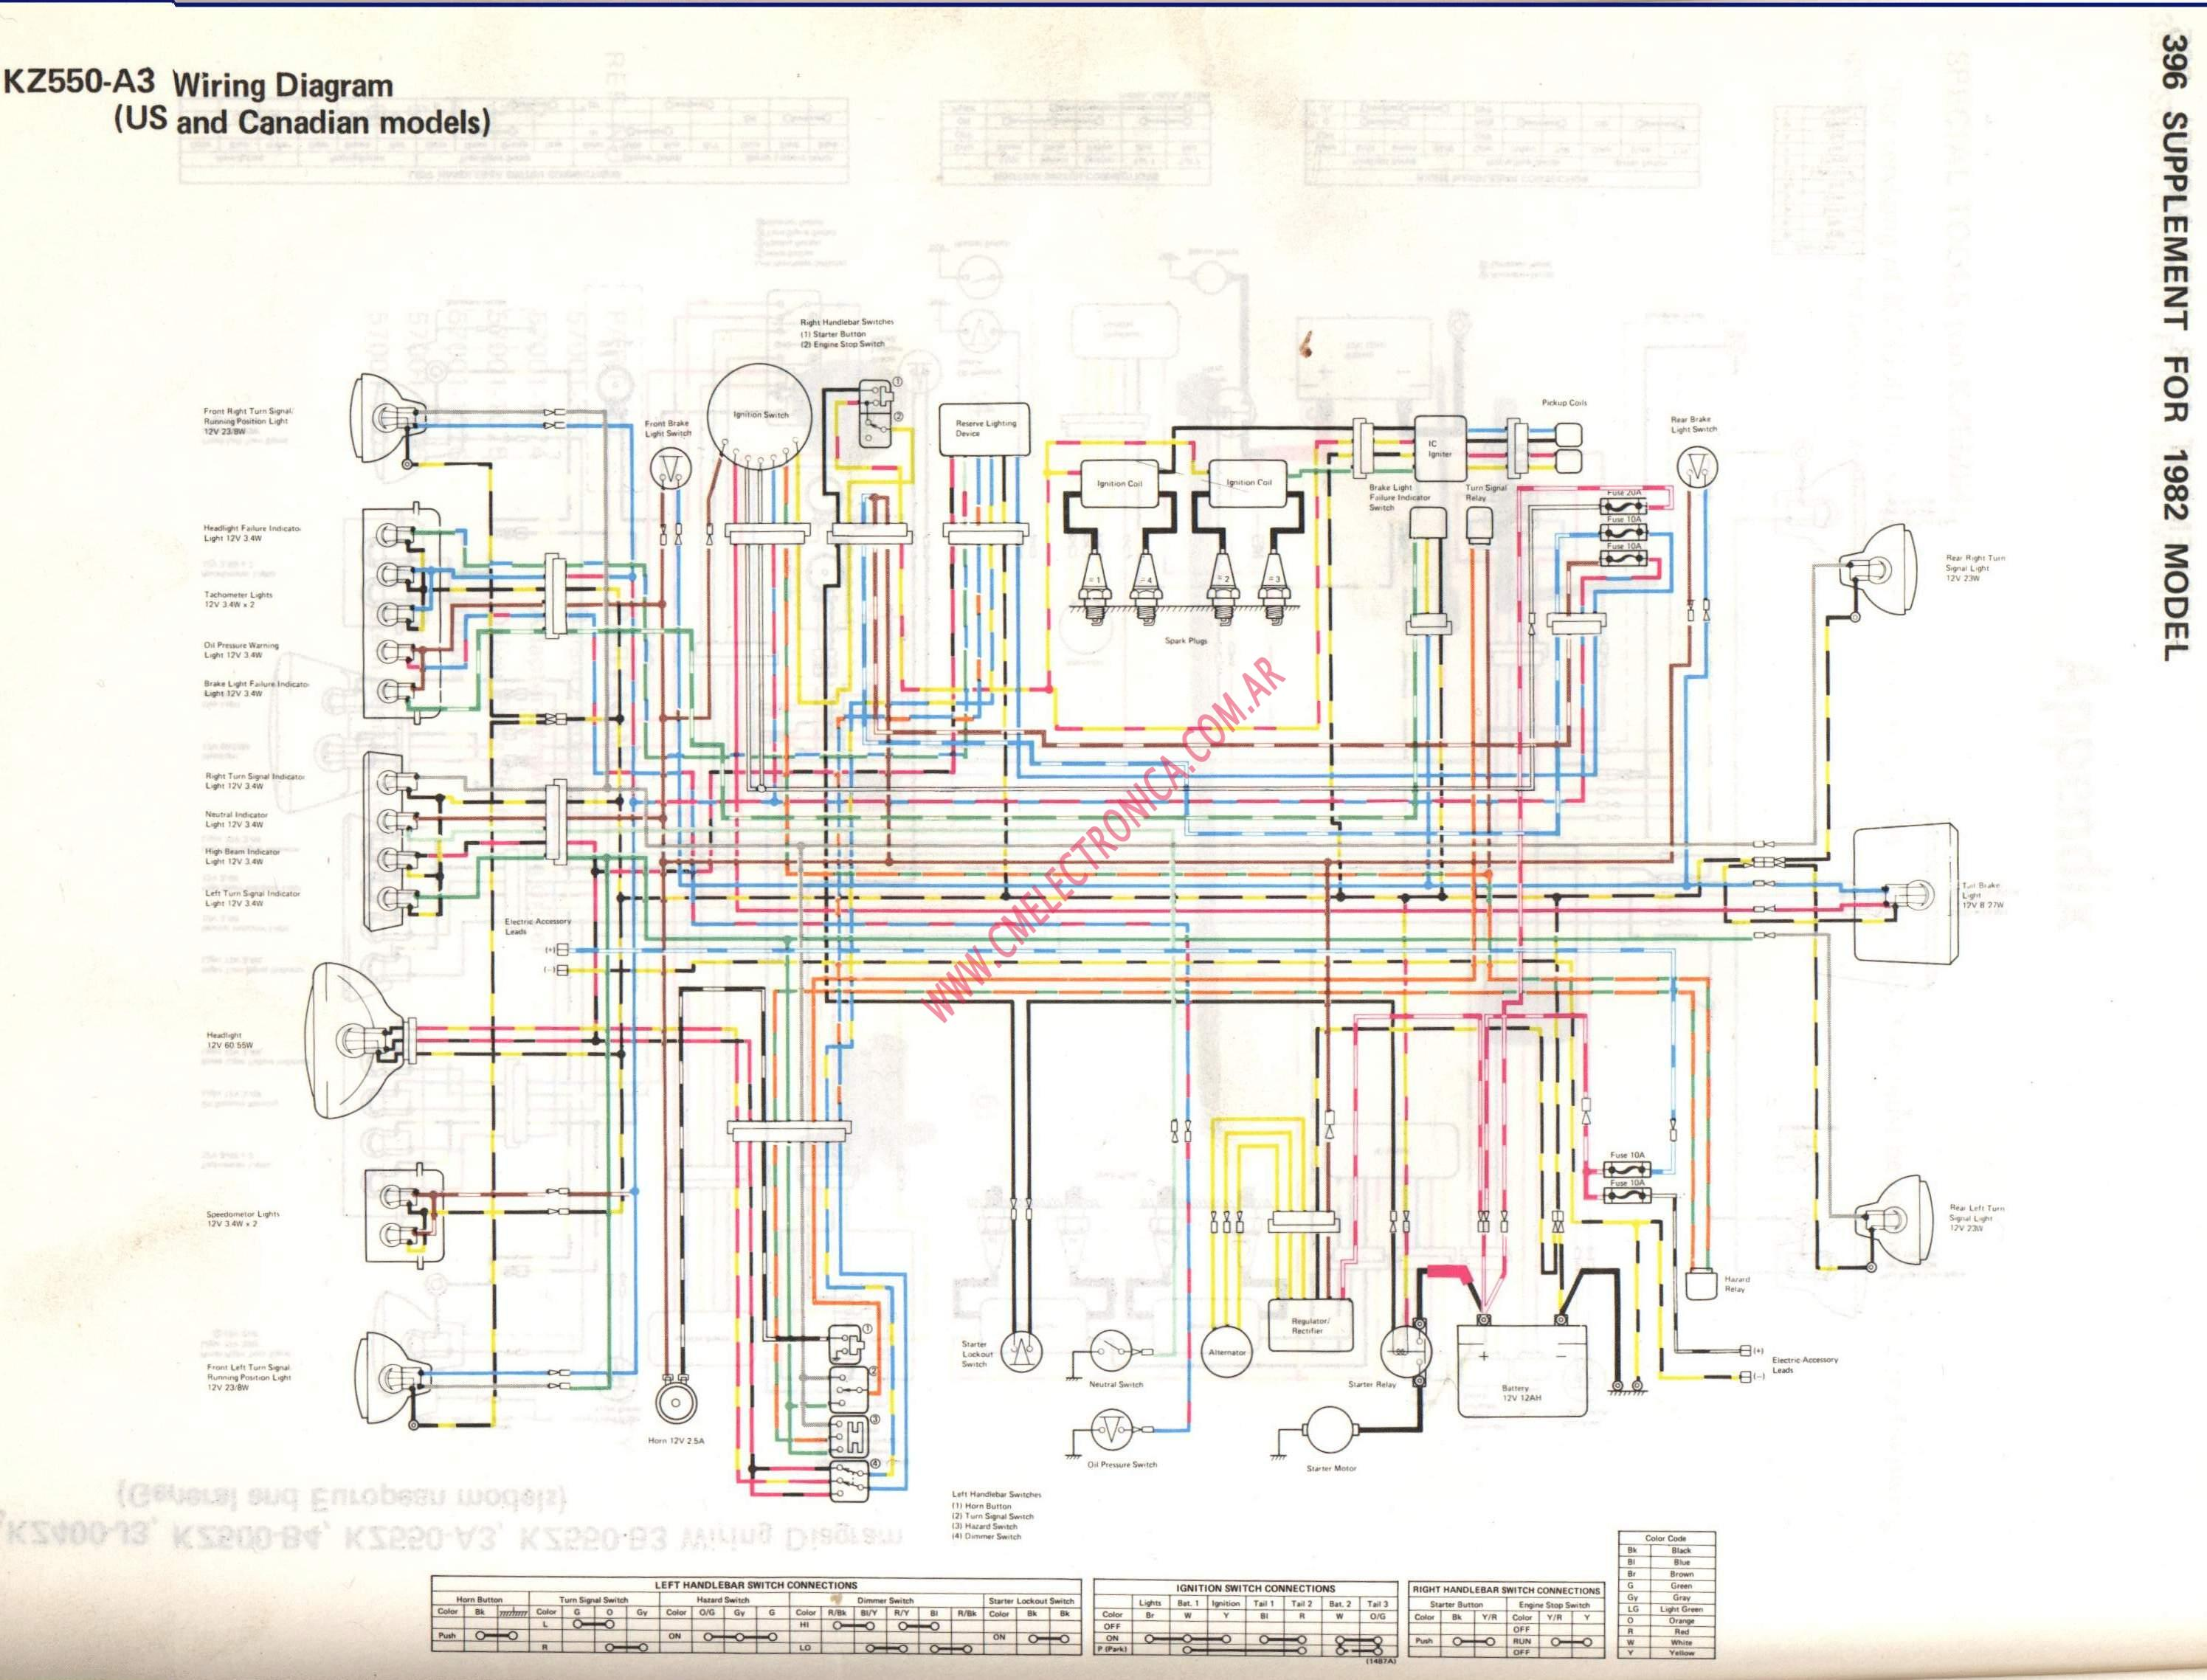 Kz550 Wiring Diagram Golden Schematic Kawasaki Easy